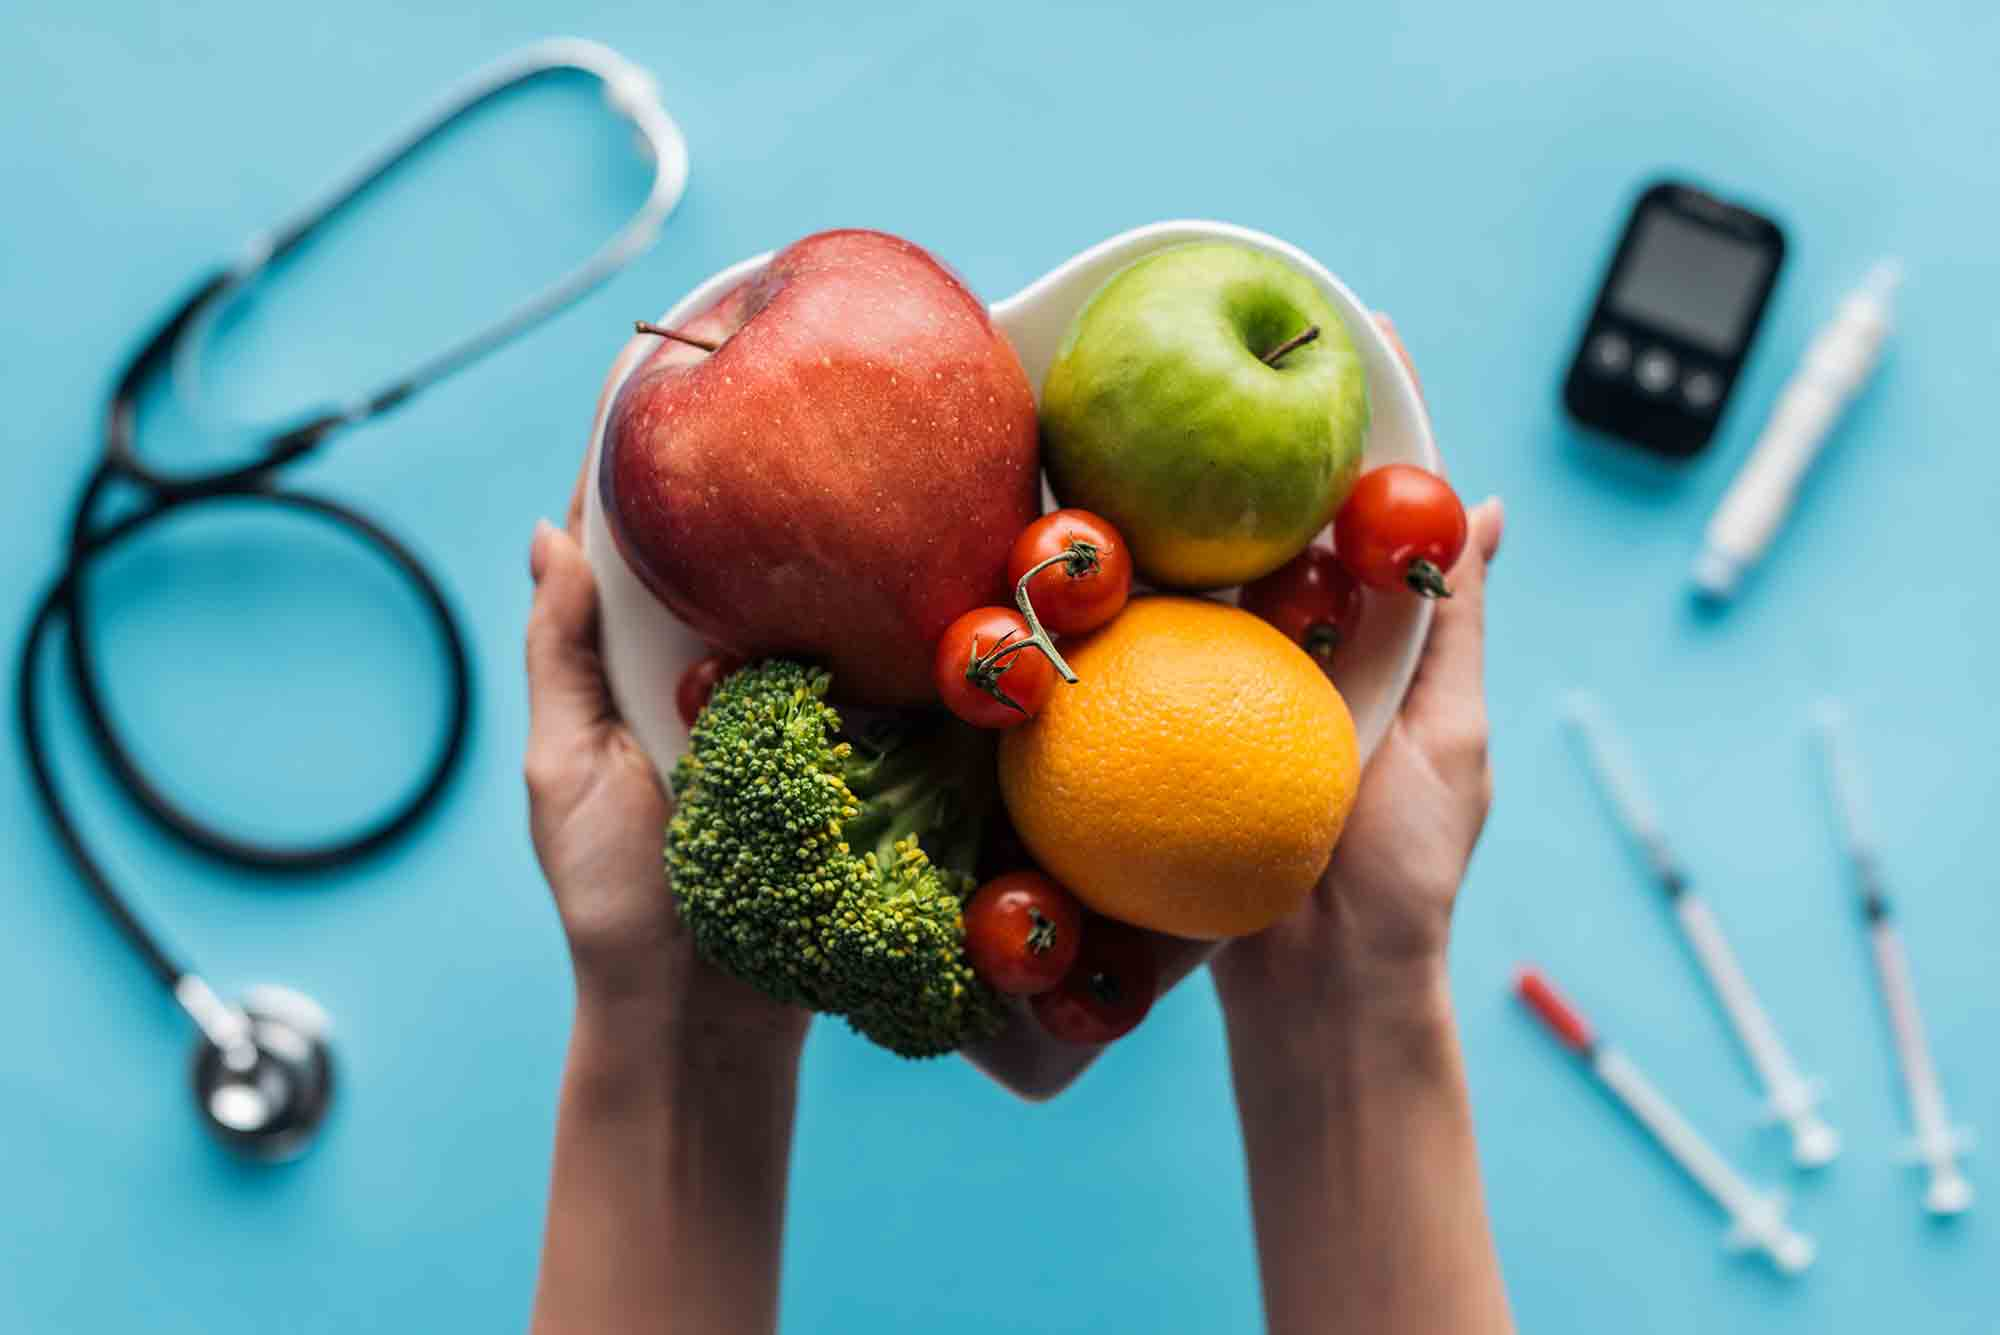 fruits-and-vegetables-in-female-hands-with-medical-equipment-on-blue-background diabetes